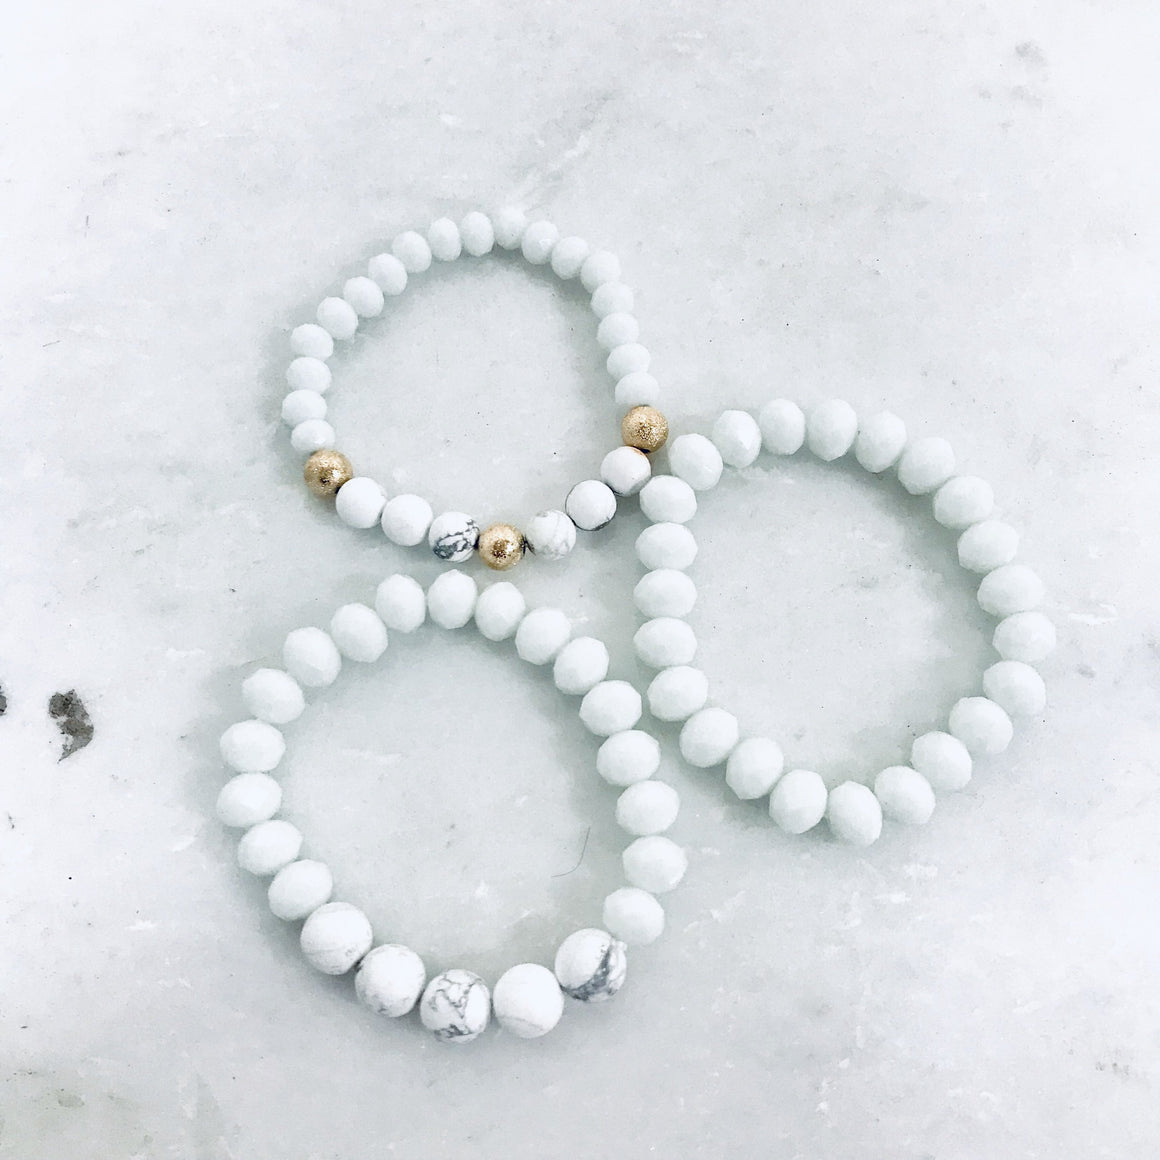 Marble & Gold Bracelet Set - Dainty Hooligan